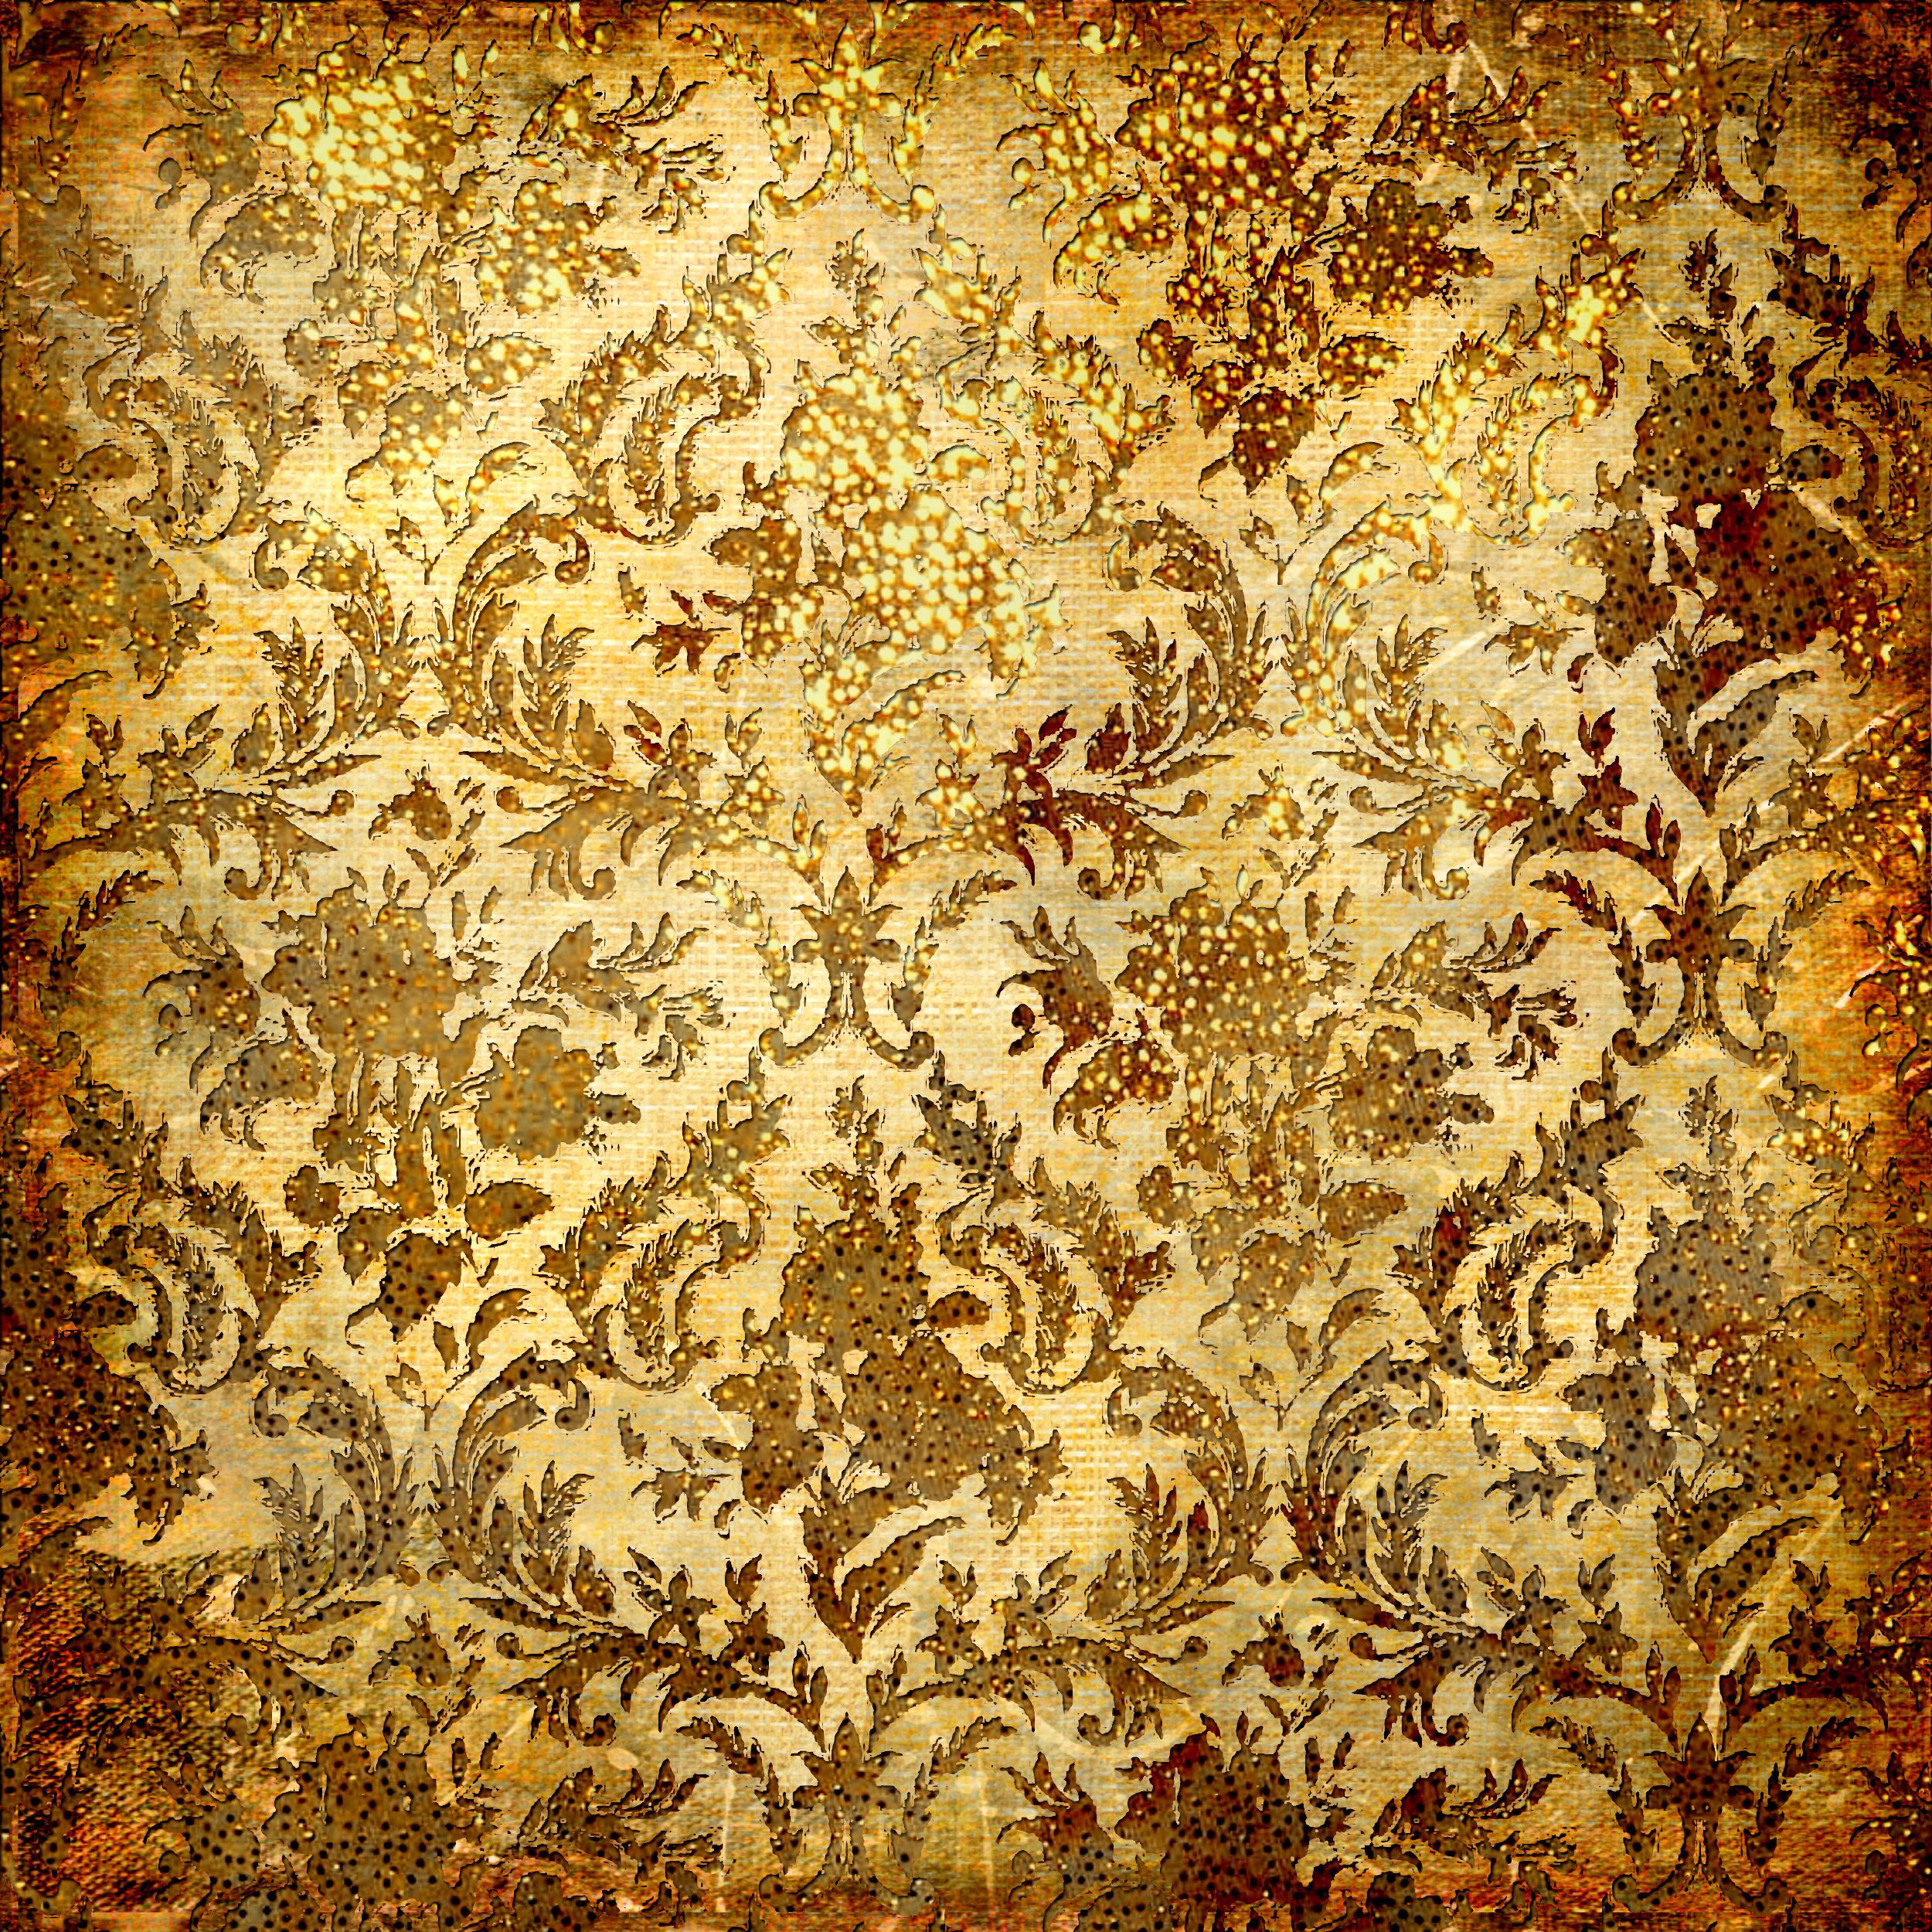 EsotericEnergy gold background jpg chelledavies 2500x2500